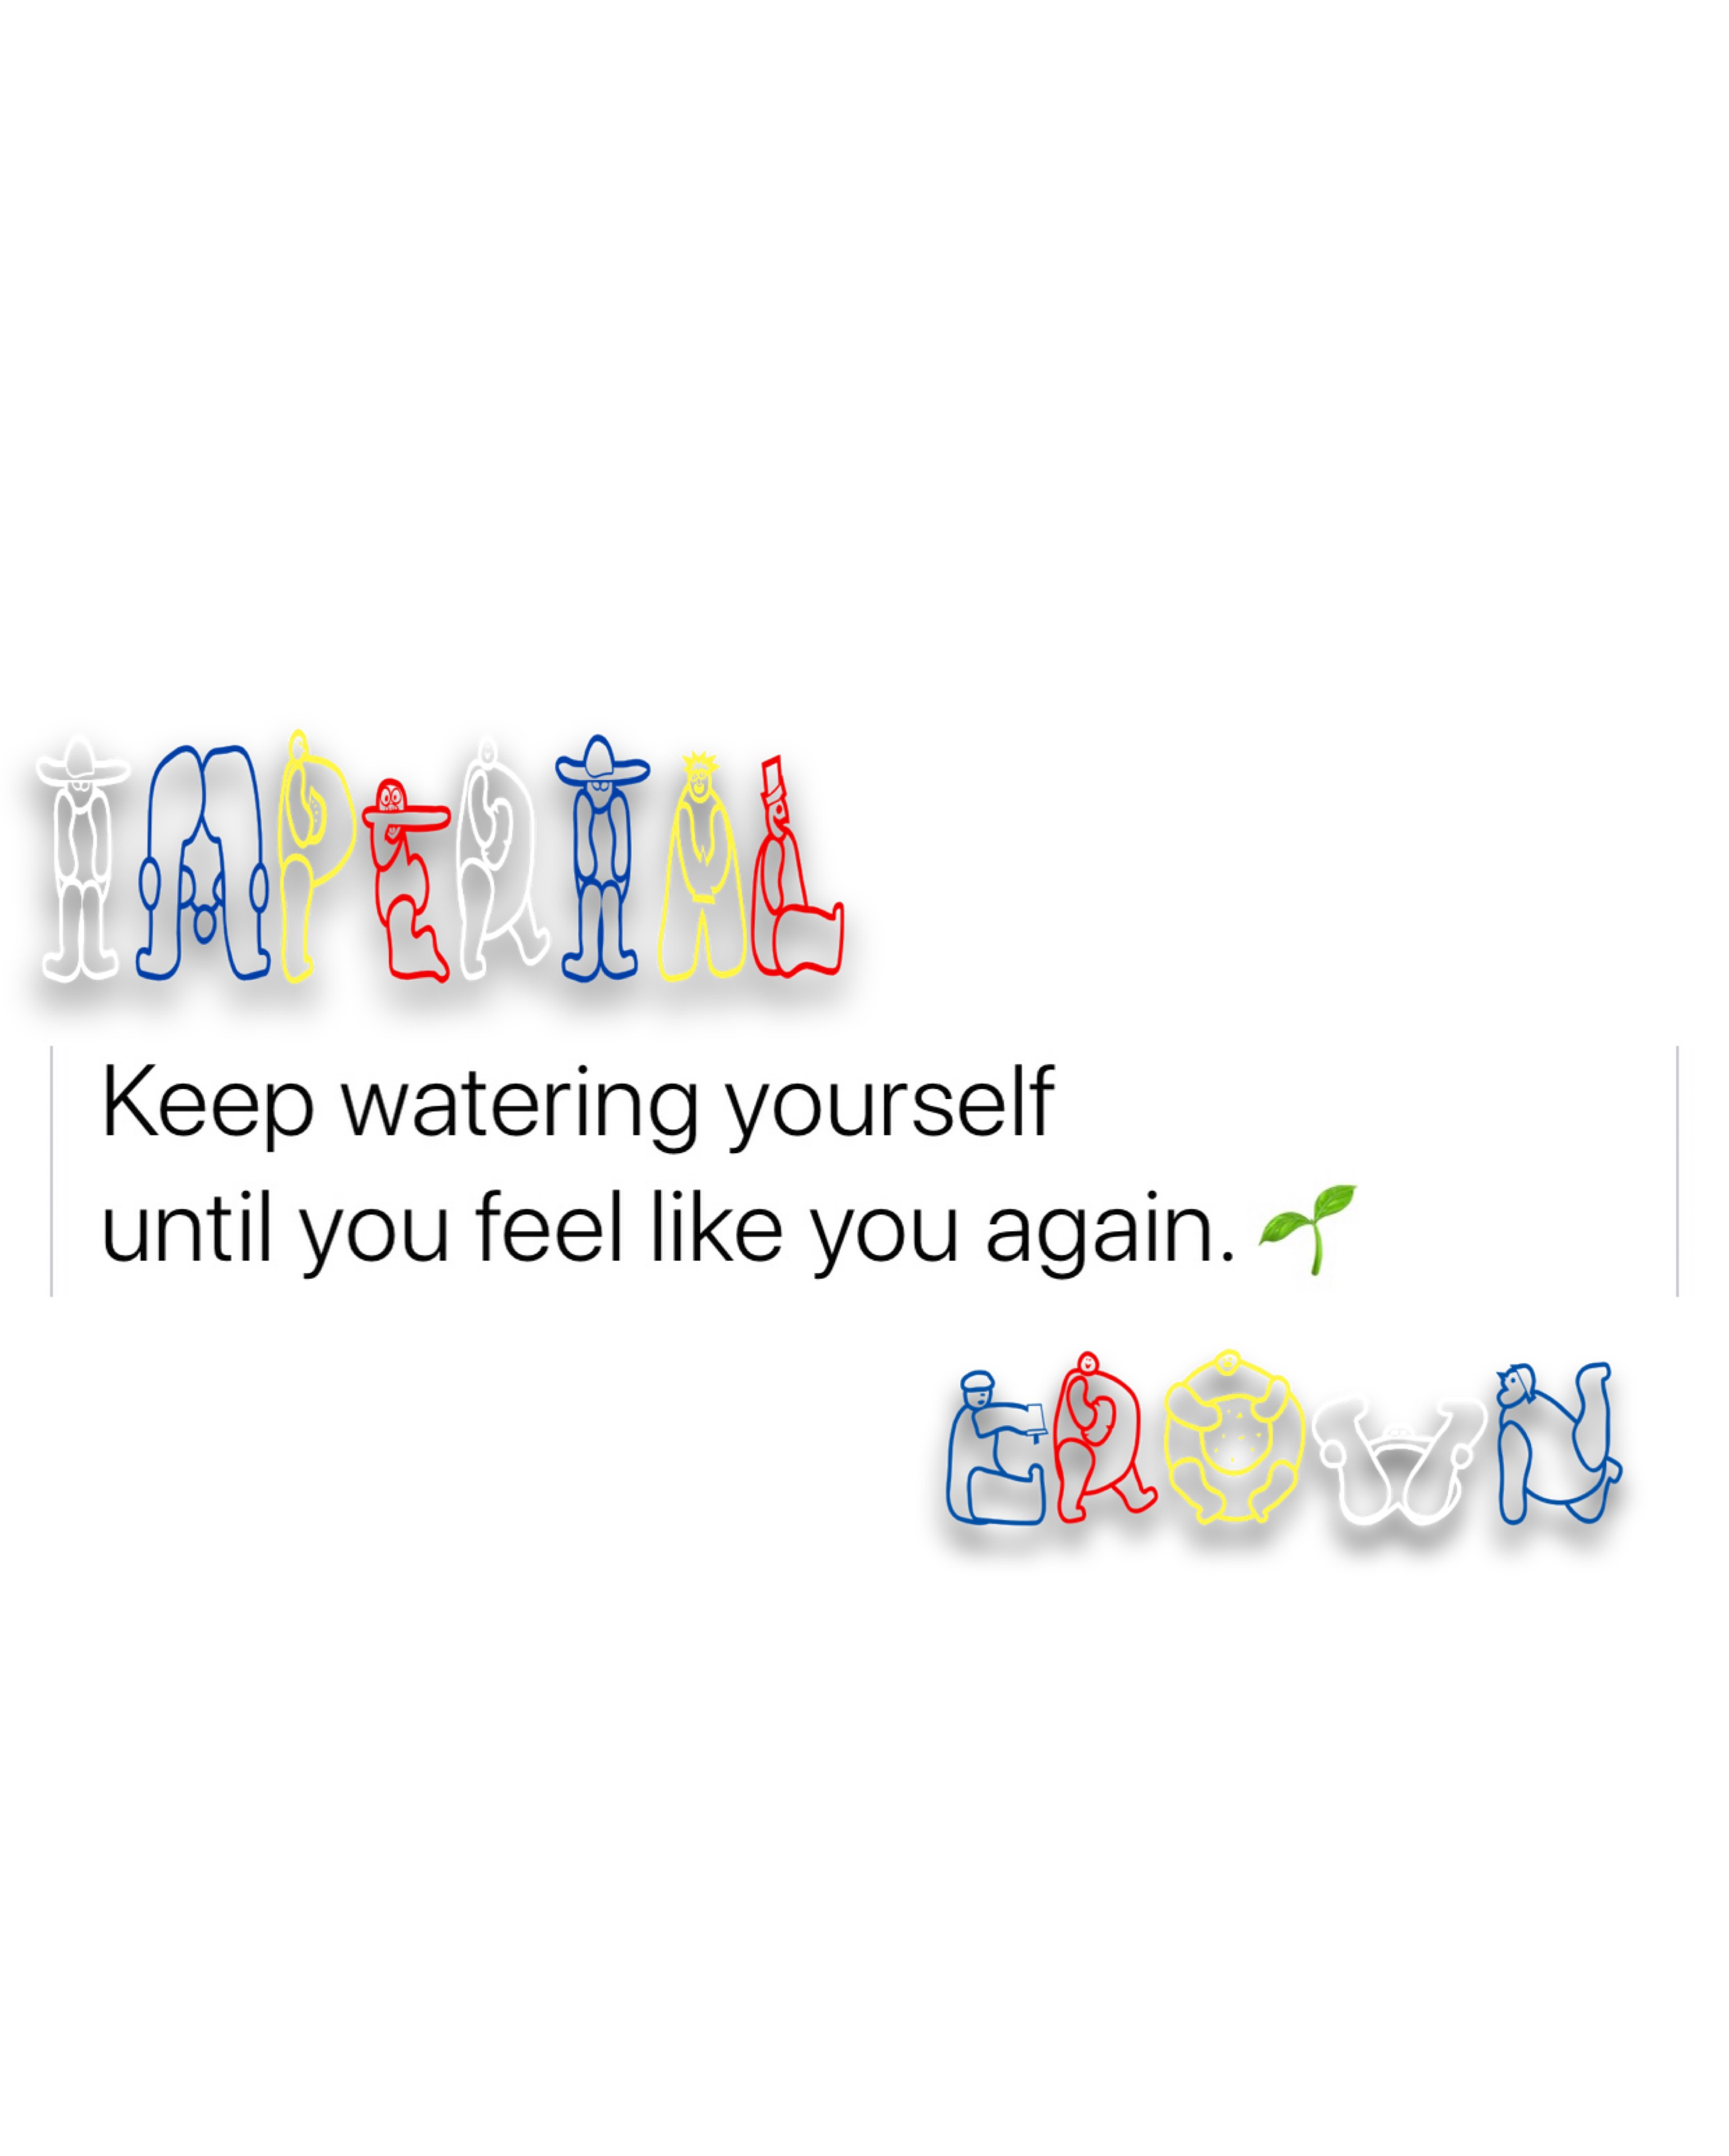 Keep watering yourself until you feel like you again